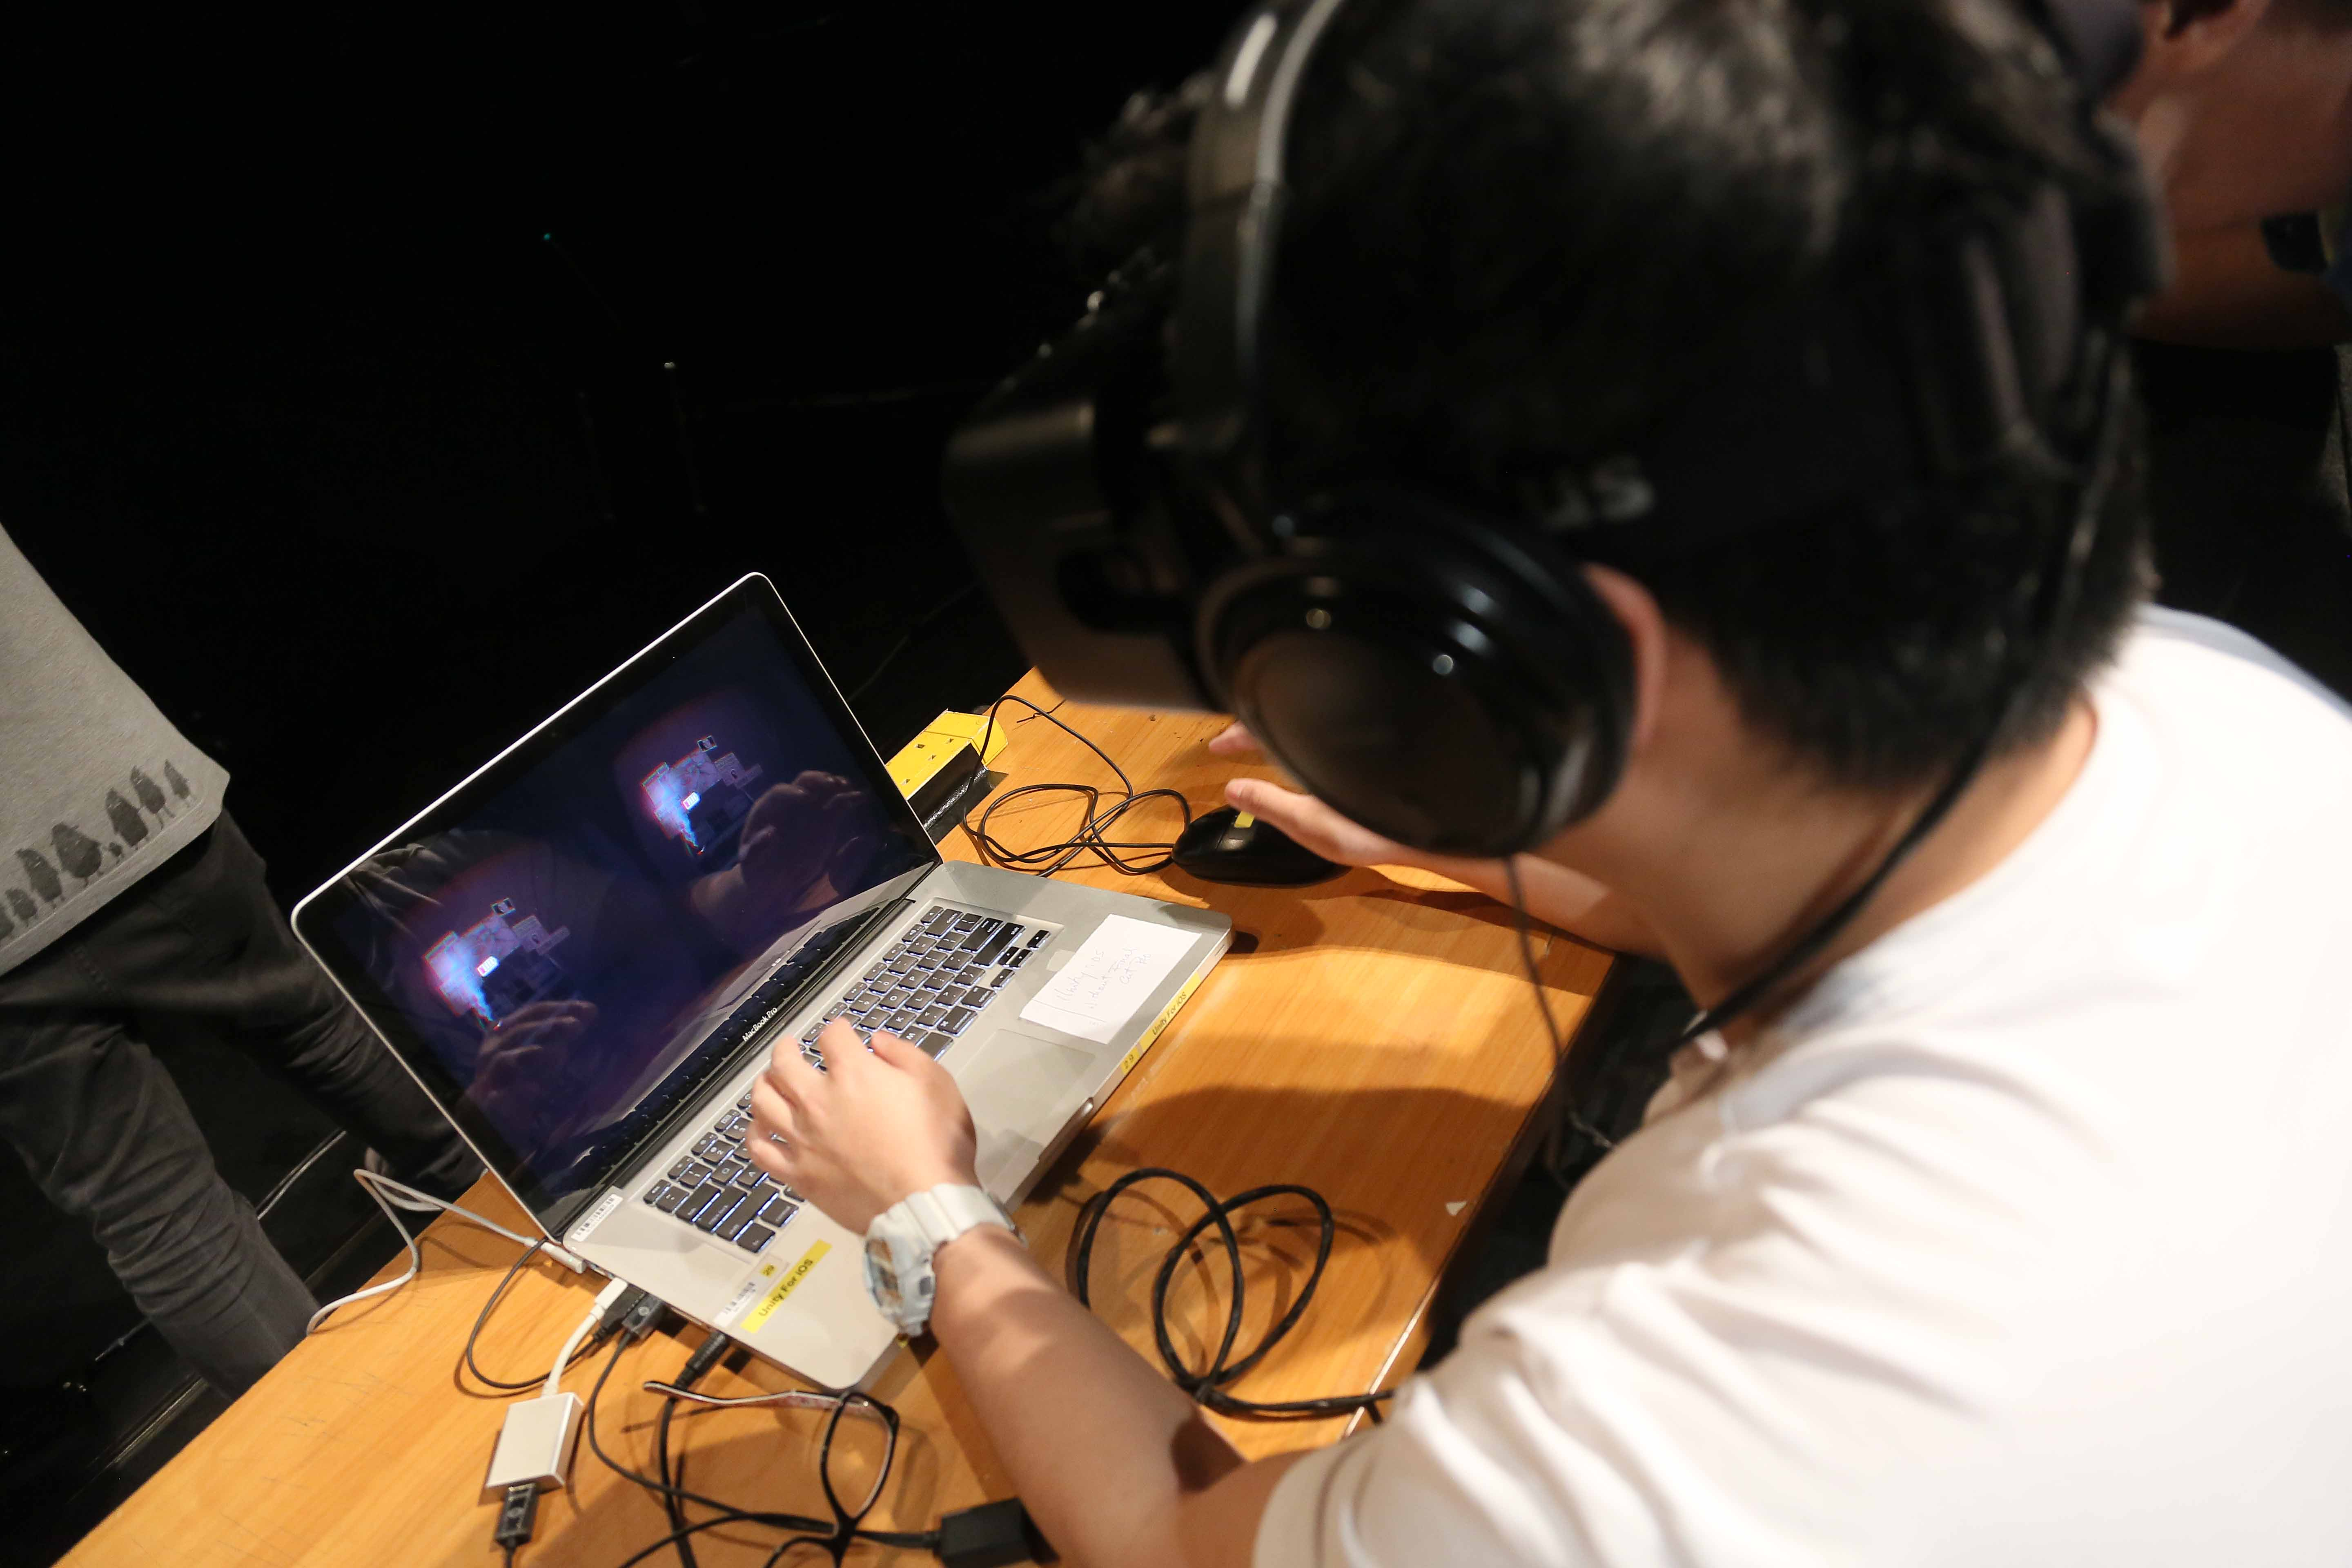 One of the participants was exploring the virtual reality game with Oculus Rift and headphone.